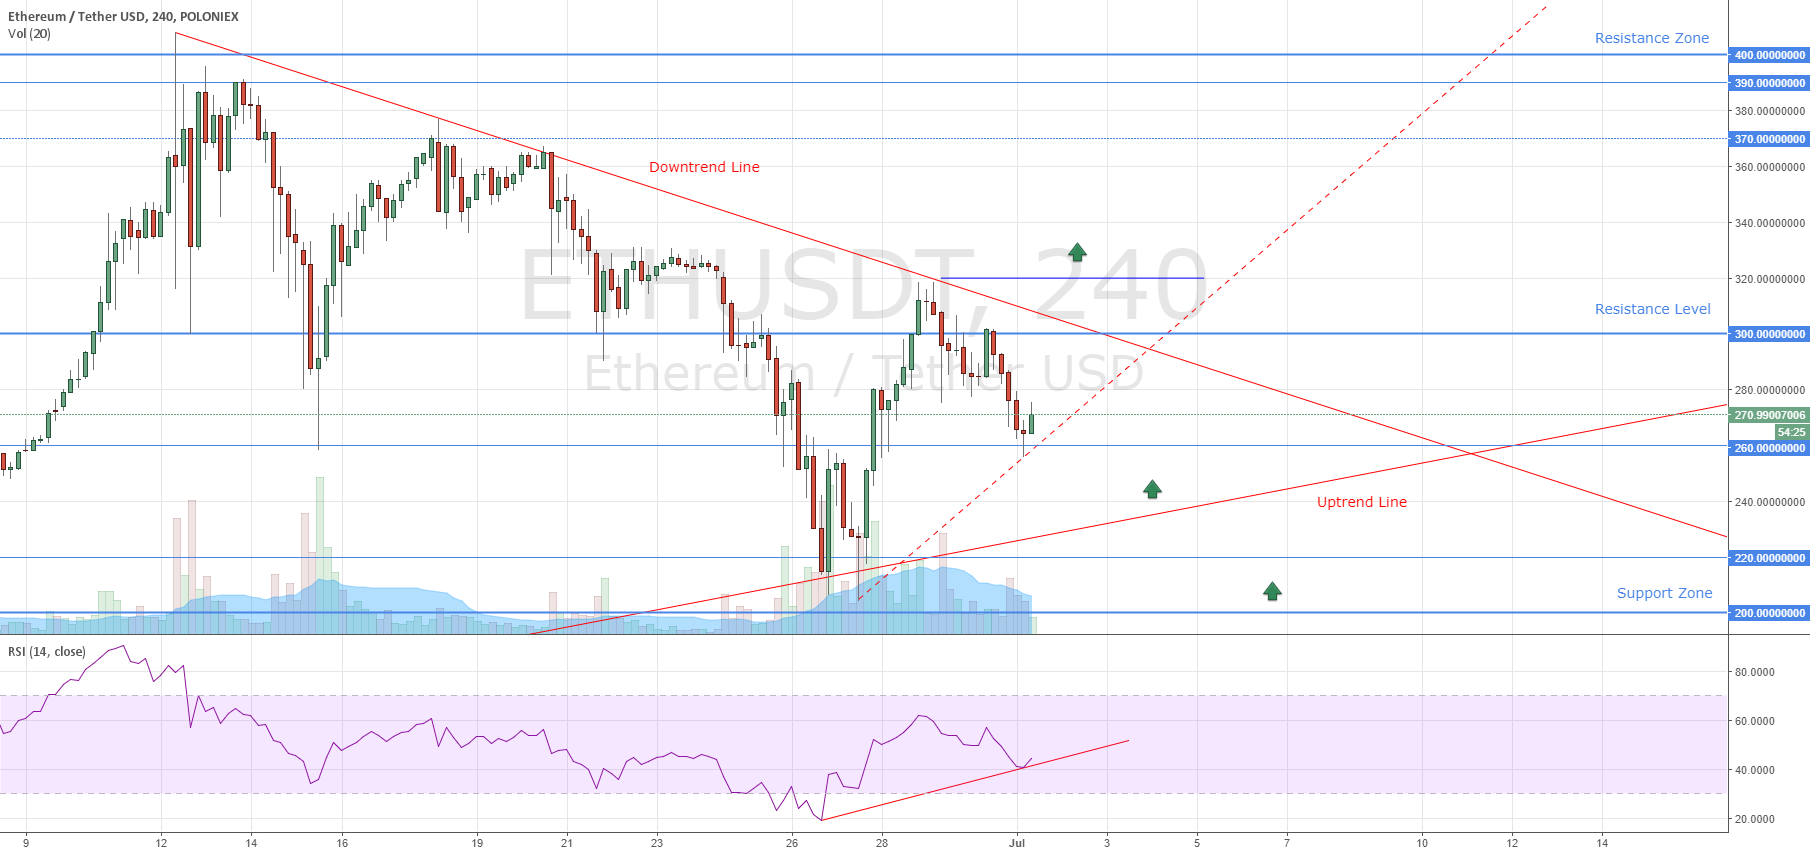 Ethereum New Entry Levels